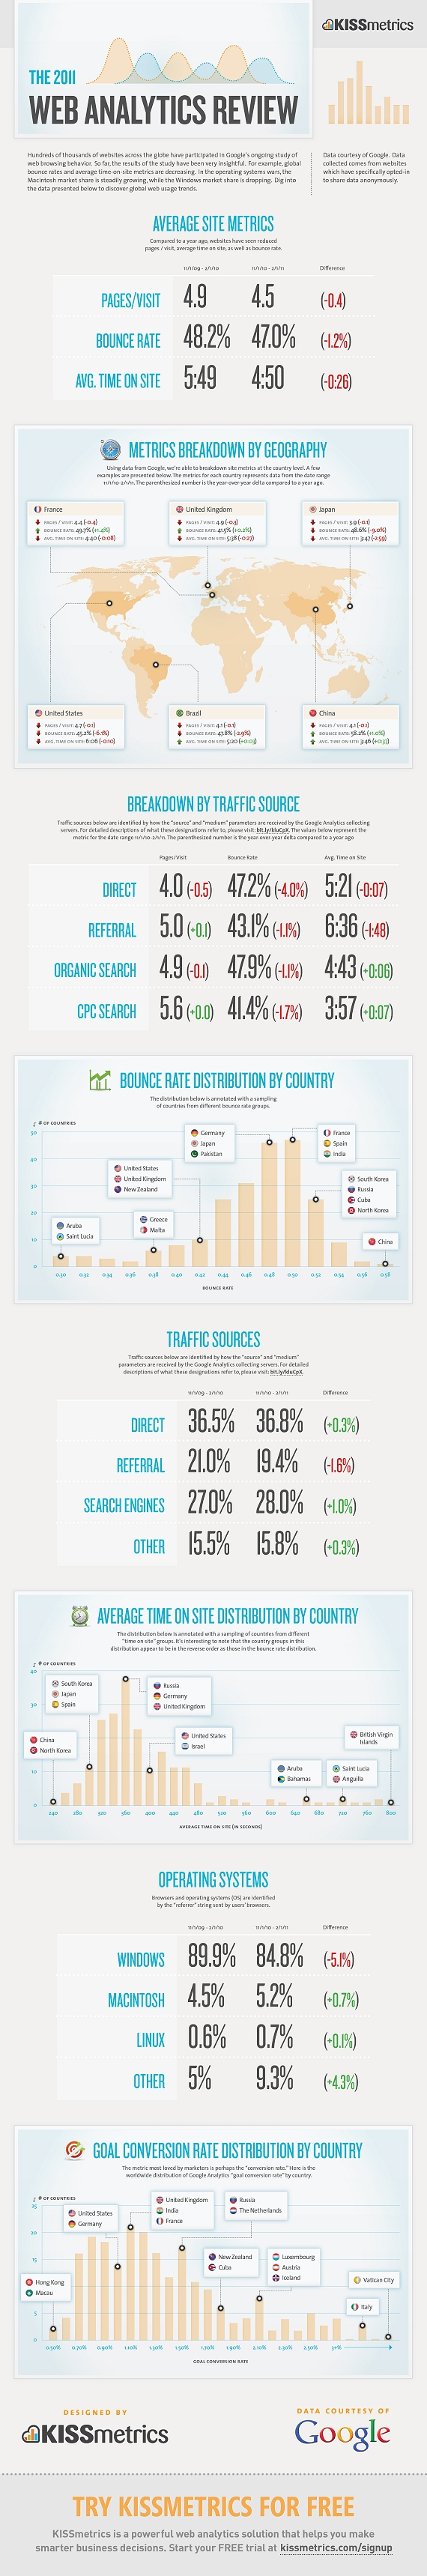 The 2011 Web Analytics Review